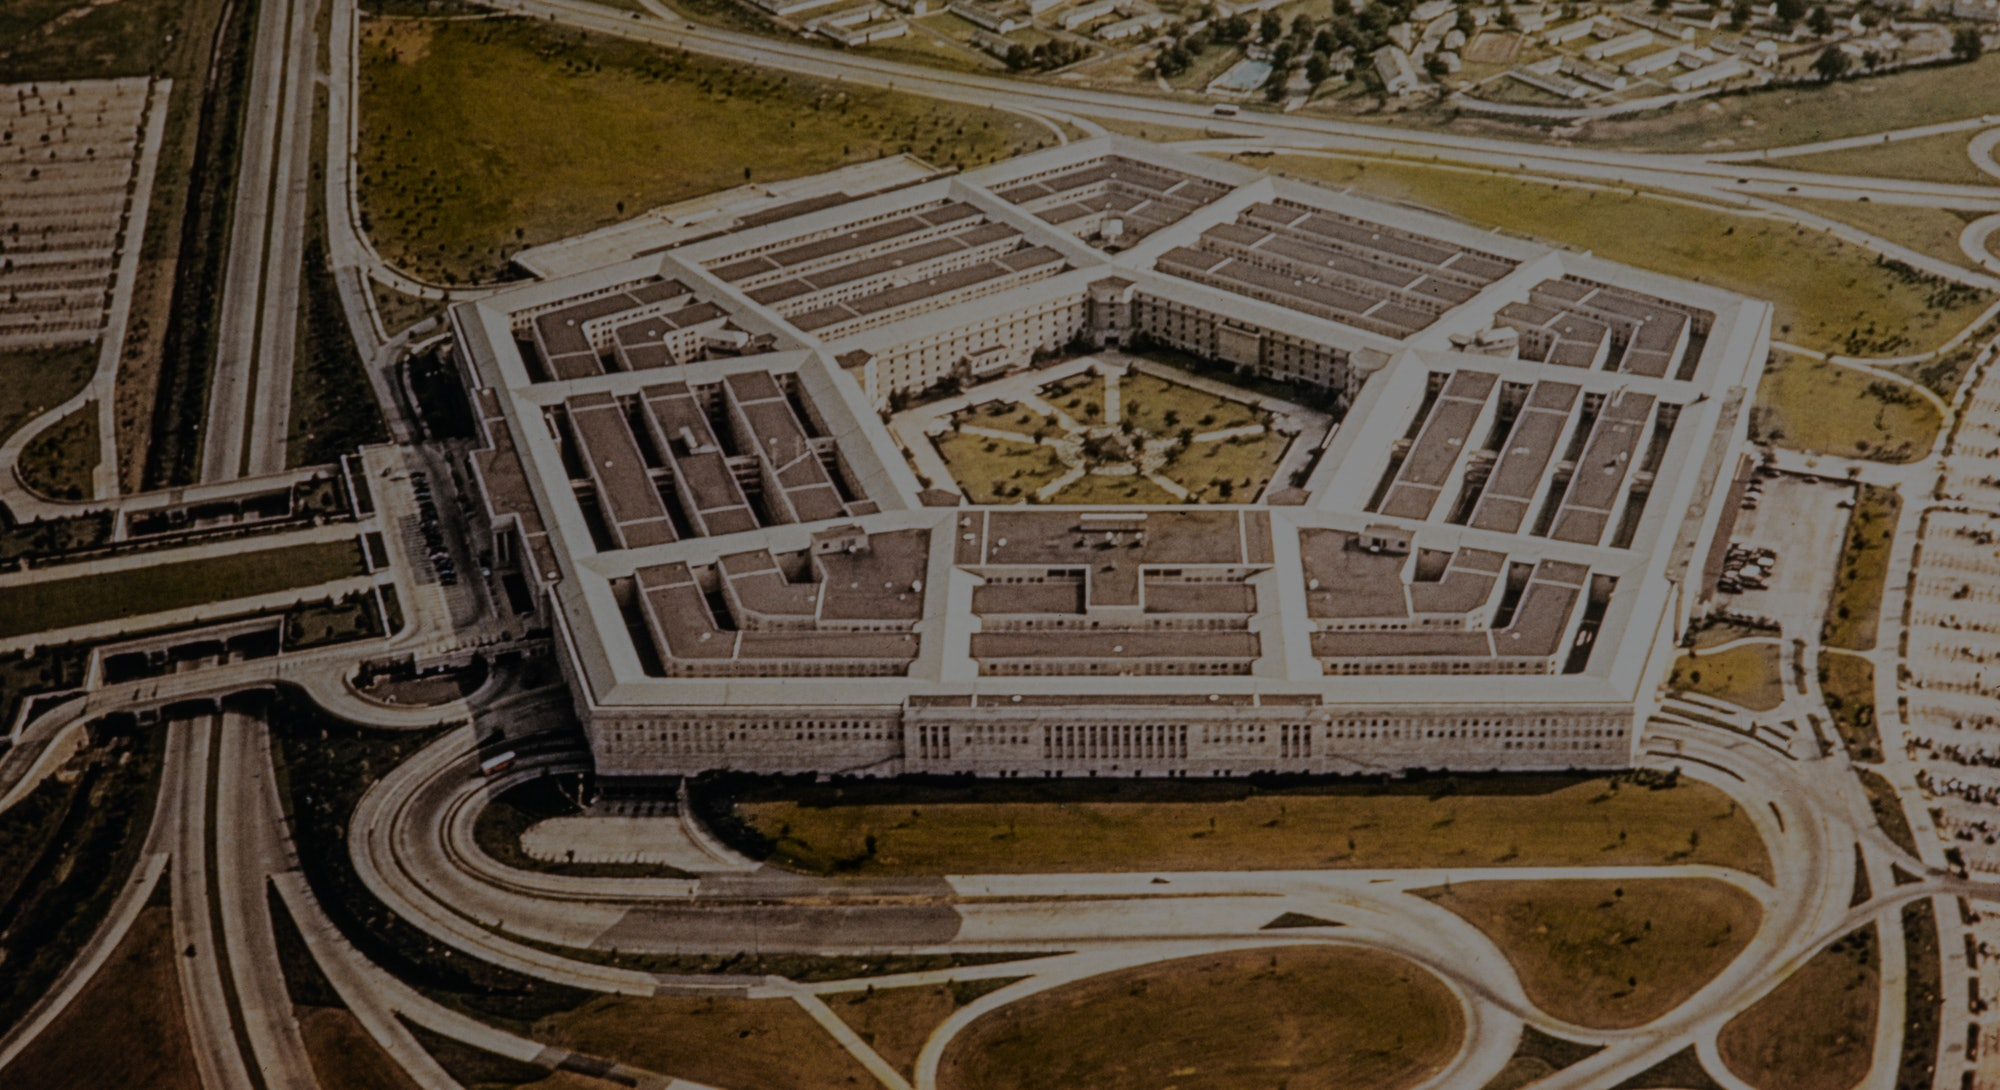 Washington during the 1950's. The United States Department of Defense is an executive branch department of the federal government charged with coordinating and supervising all agencies and functions of the government directly related to national security and the United States Armed Forces. Aerial of the Pentagon, the Department of Defense headquarters in Arlington, Virginia, near Washington DC, with I-395 freeway on the left, and the Air Force Memorial up middle.